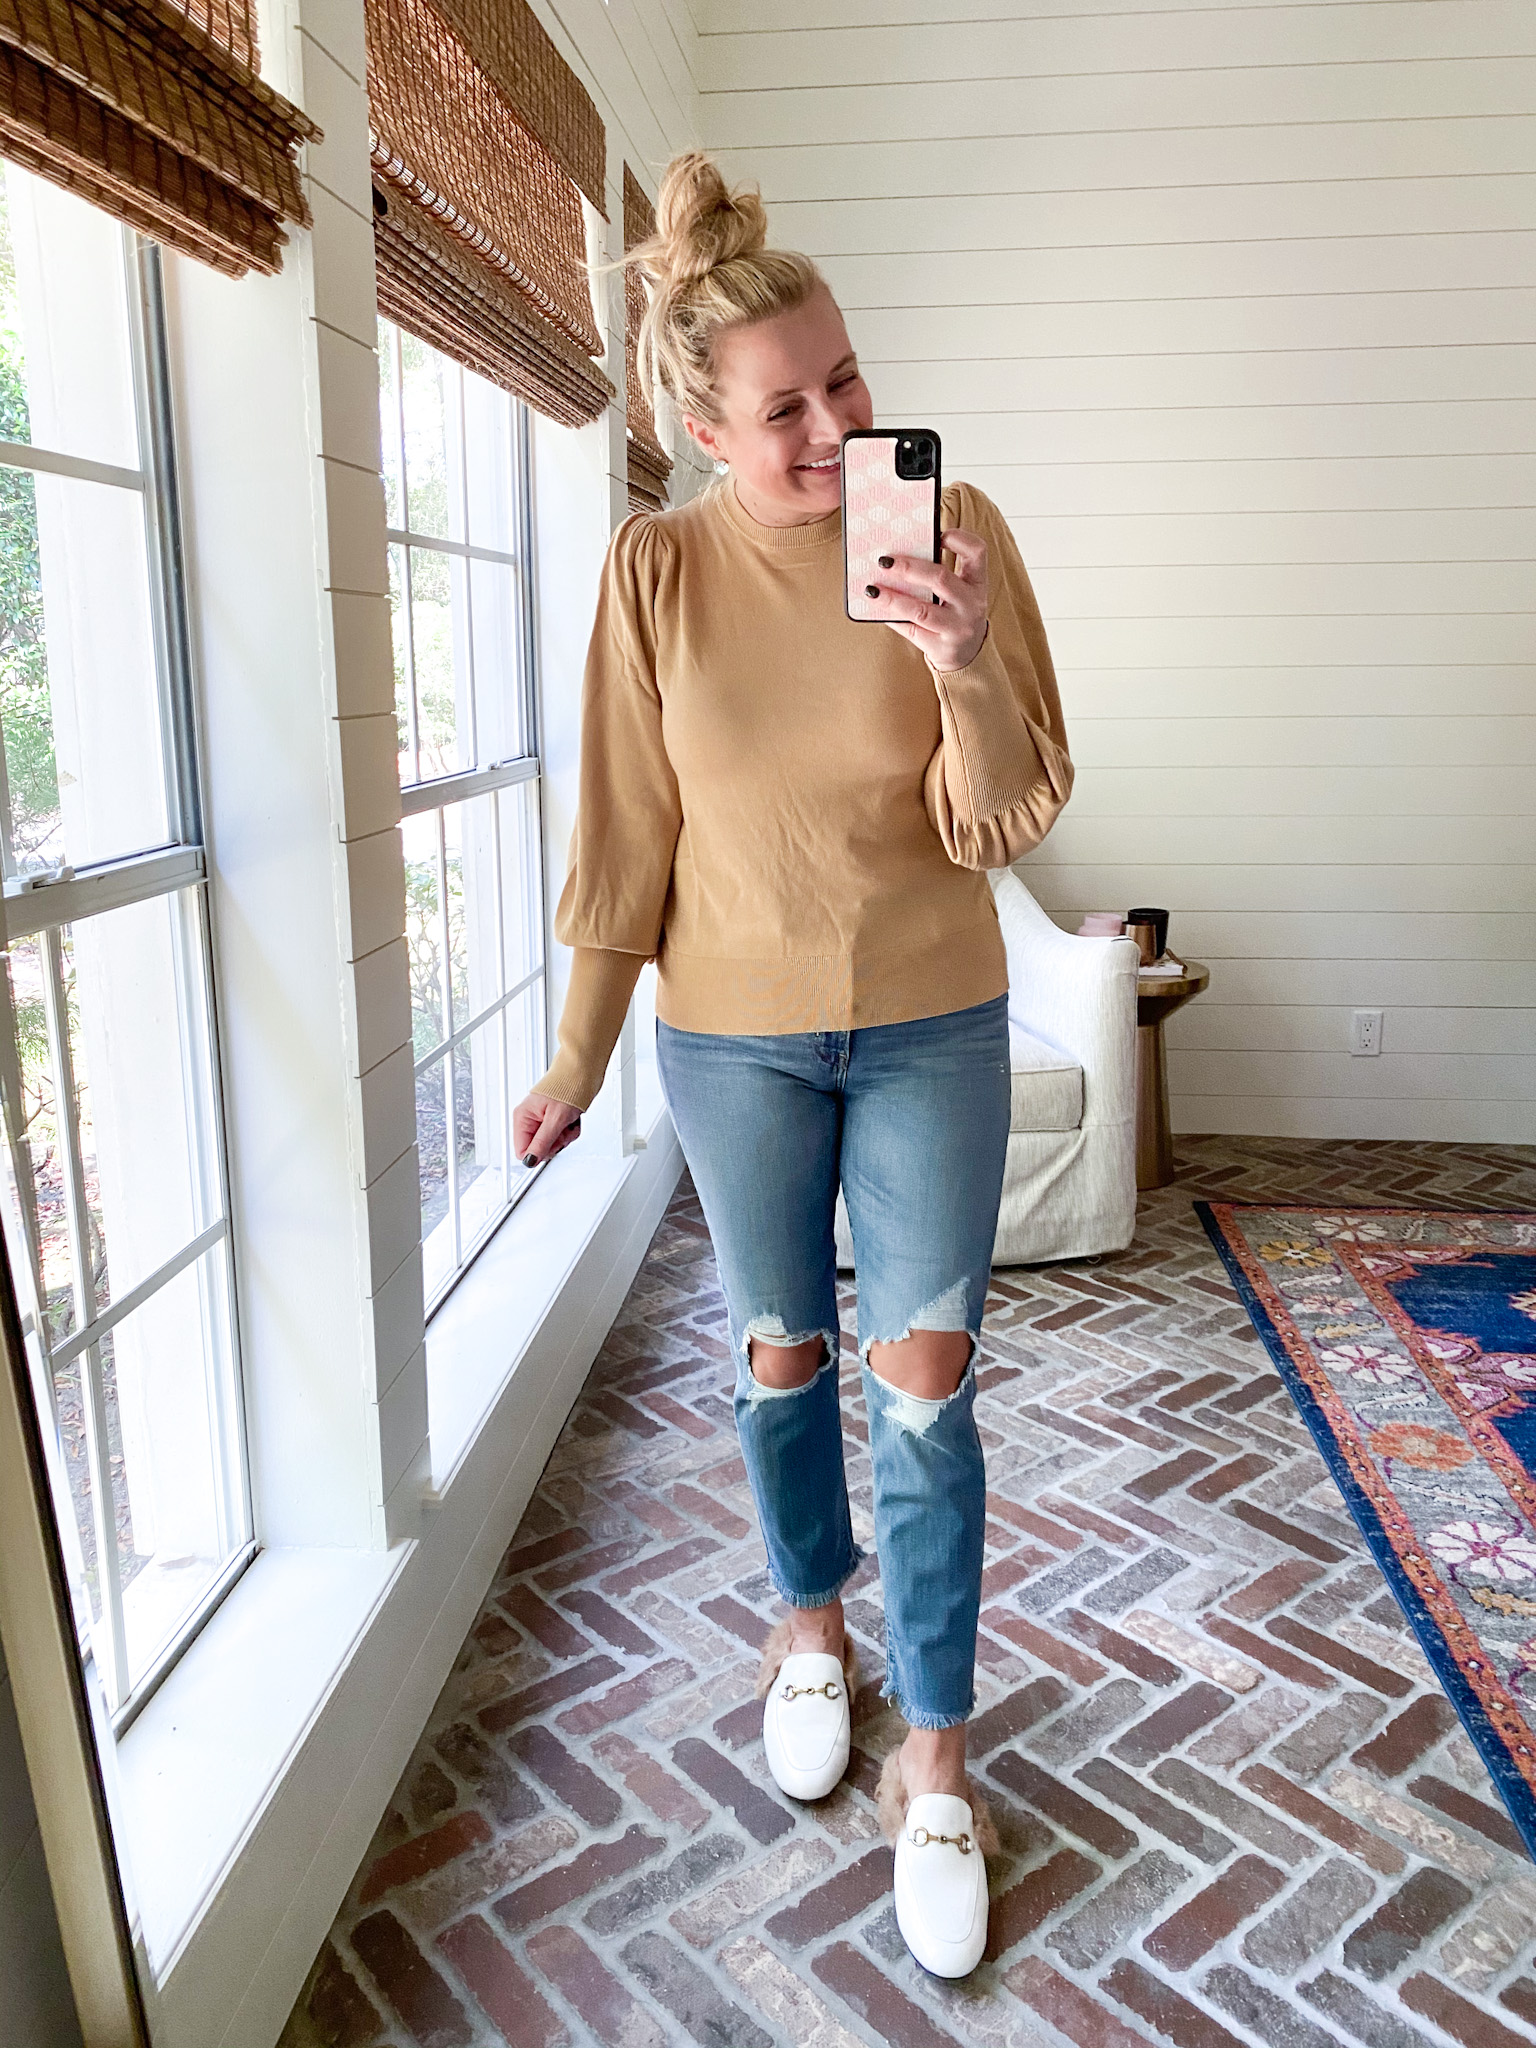 Prime Day by popular Houston fashion blog, Fancy Ashley: image of a woman wearing a Amazon puff sleeve top, distressed denim, and white mules.